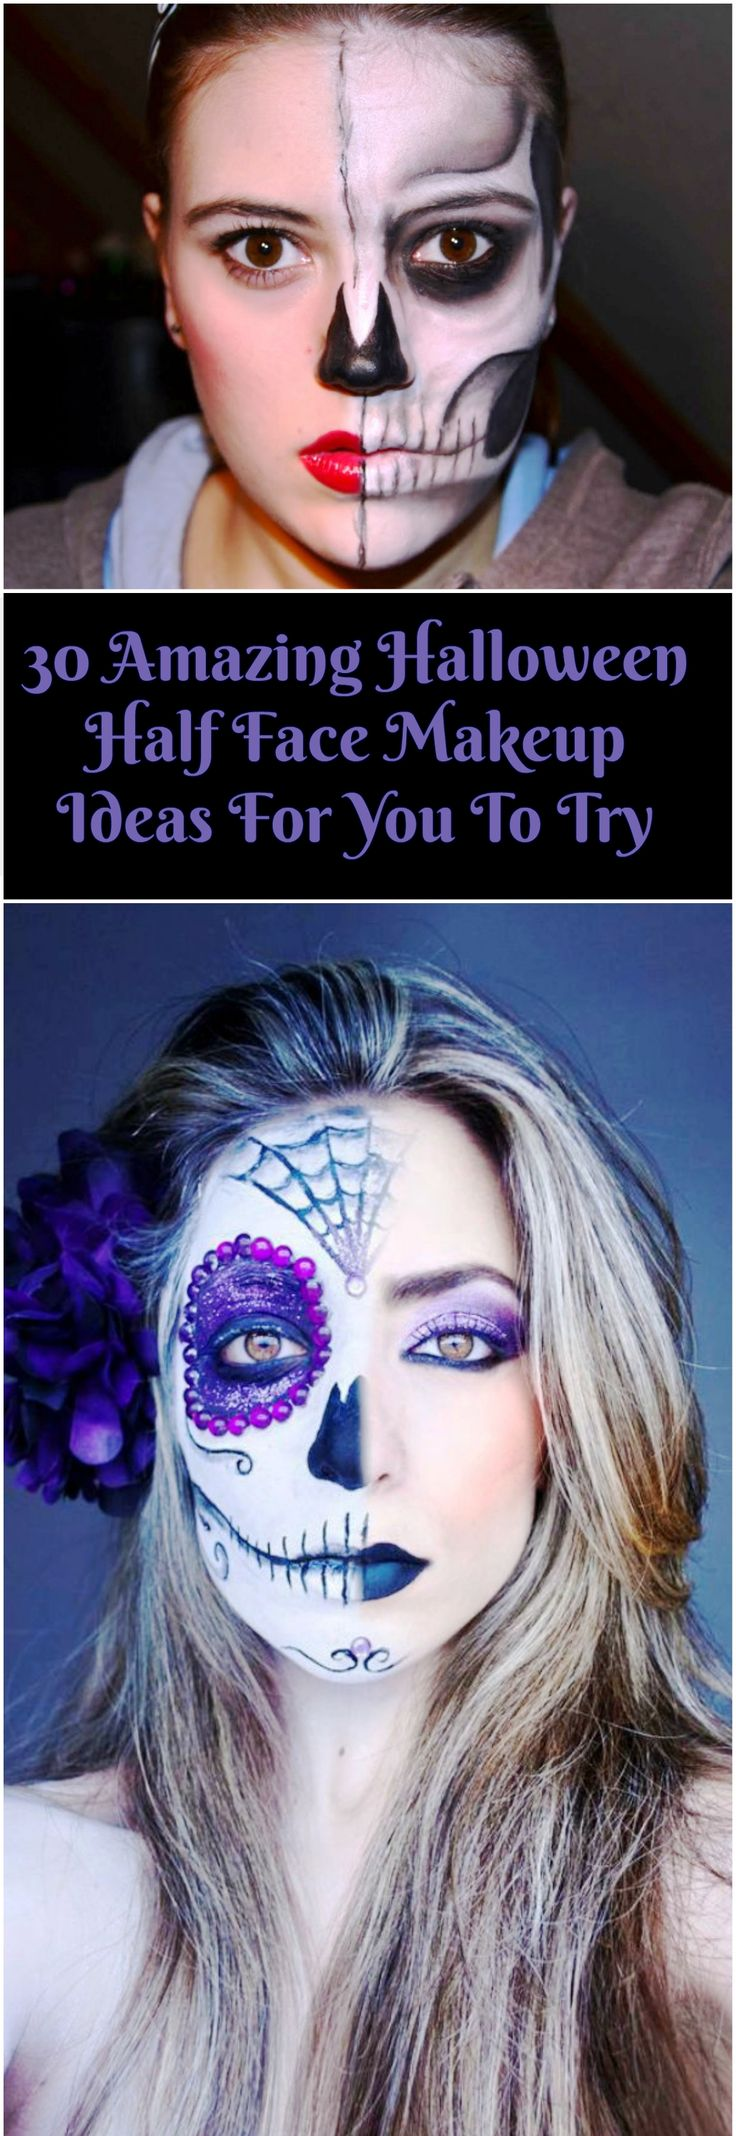 "if you are looking for an inspiration about Halloween Half Face Makeup Ideas you can read the full article. So checkout ""30 Amazing Halloween Half Face Makeup Ideas For You To Try"""